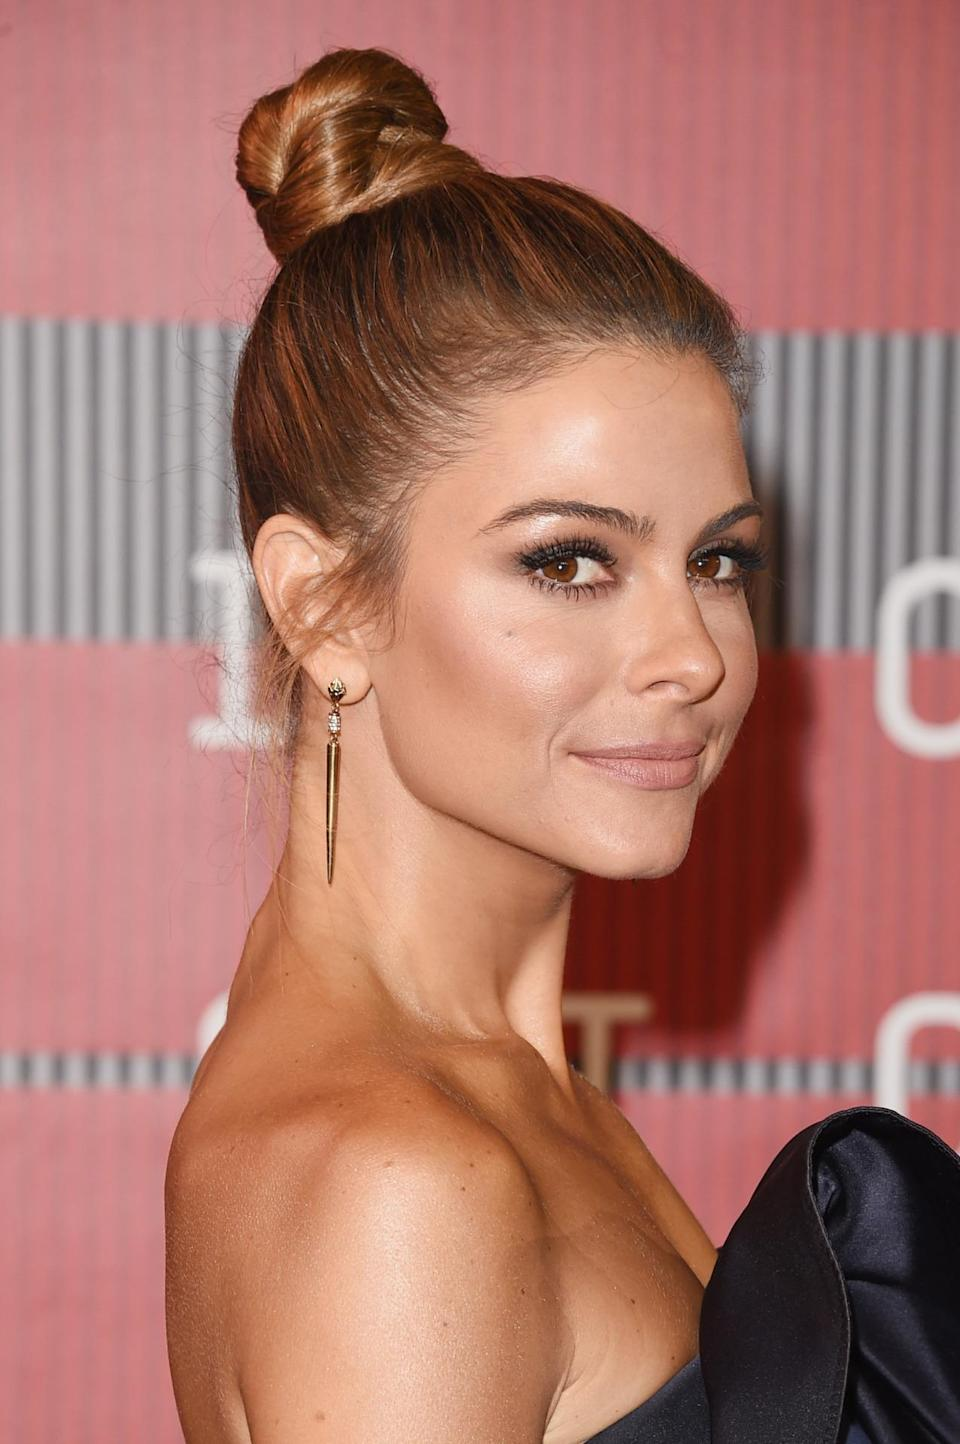 <p>The TV host went for a pretty, ballerina-style topknot at the MTV Video Music Awards.</p><p>Source: Getty Images<br></p>